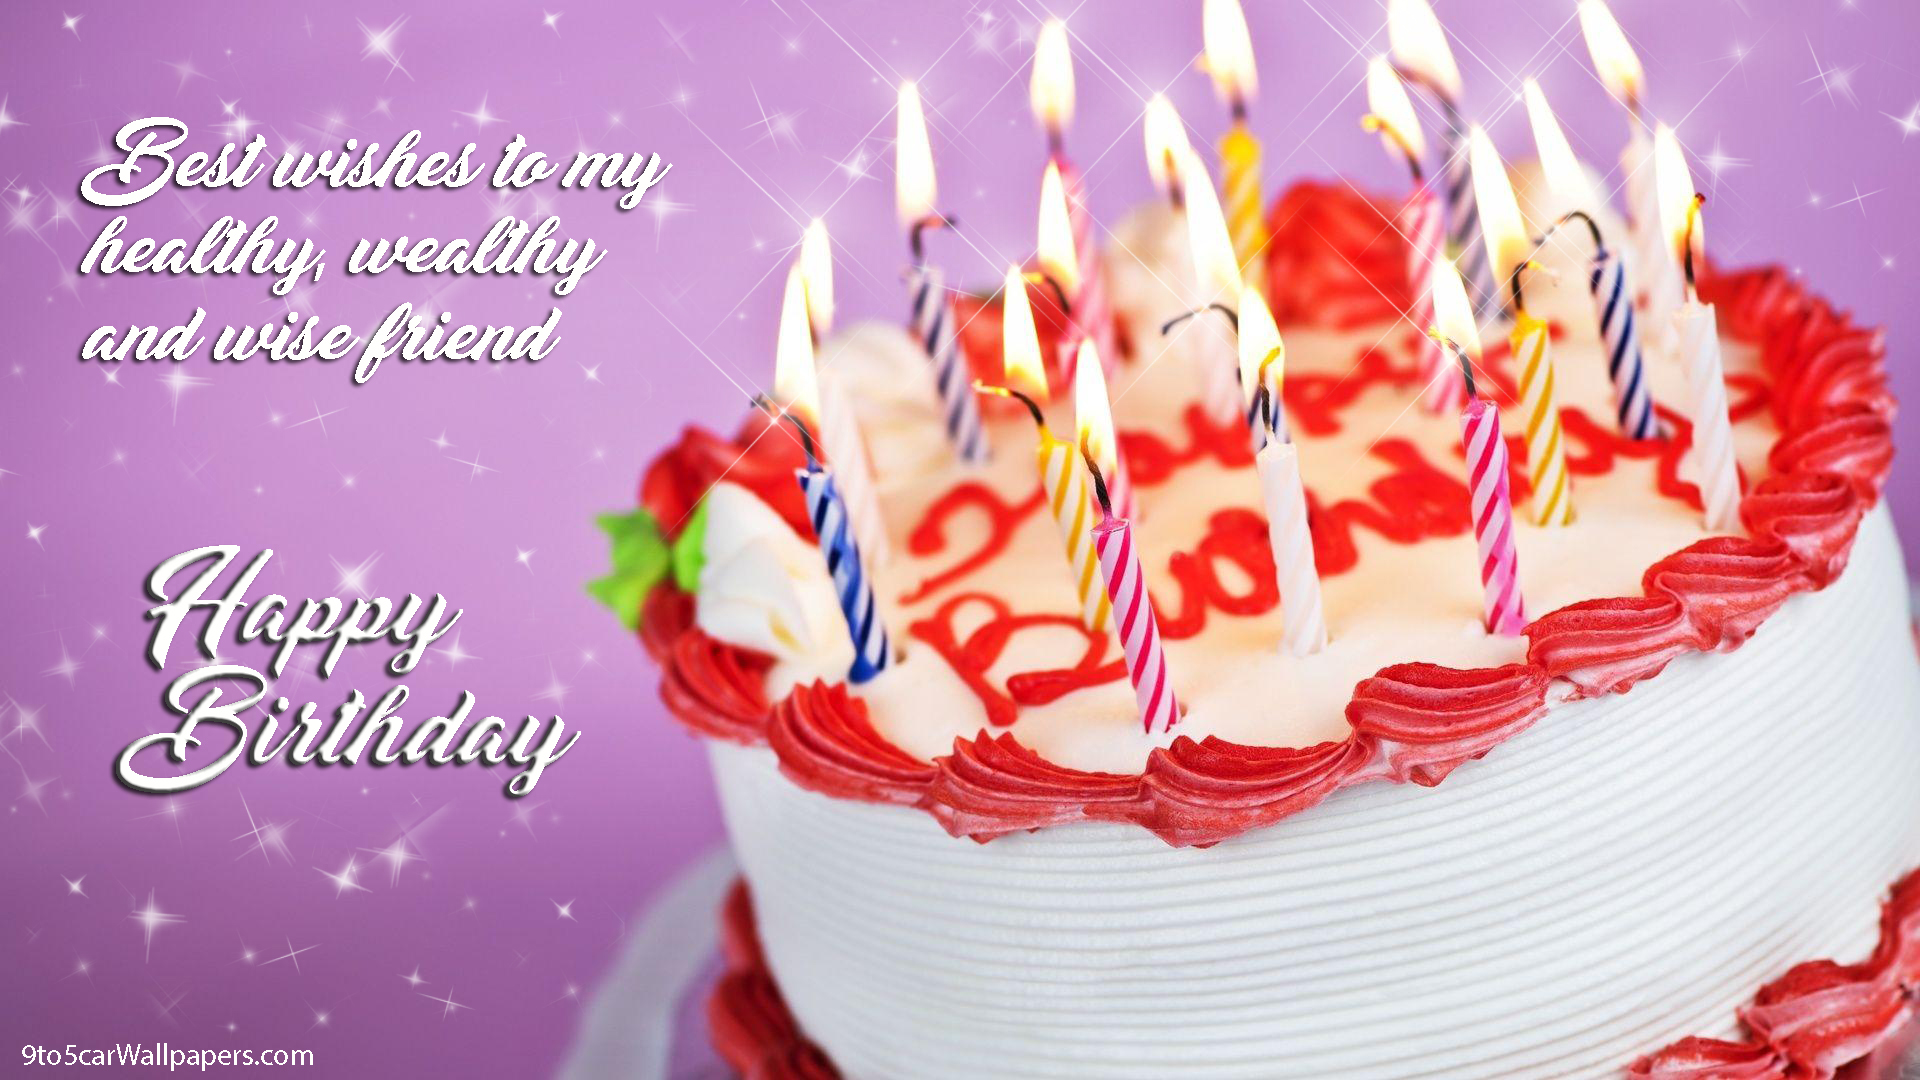 birthday-cake-pics-Wallpapers